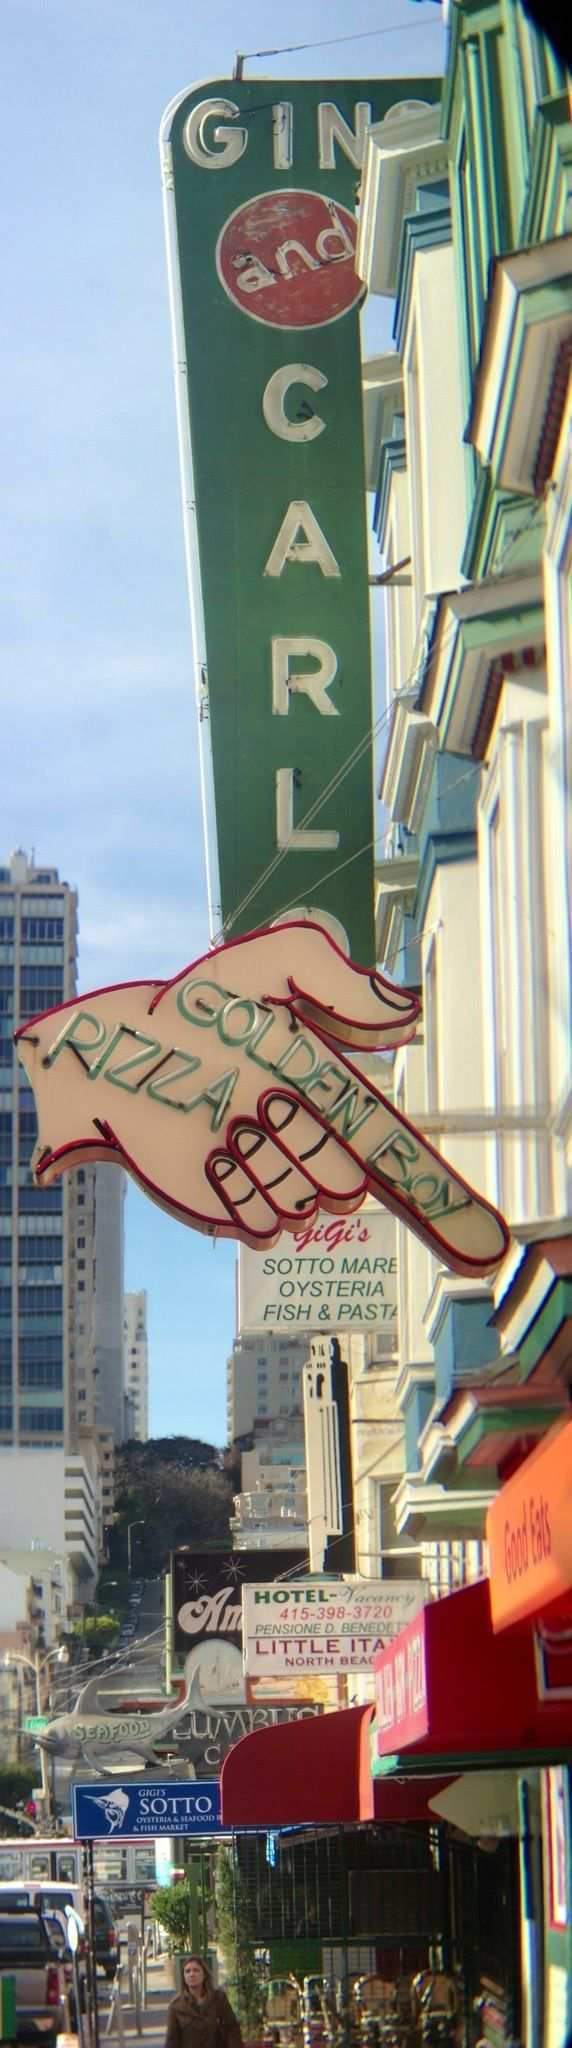 Golden Boy Pizza, North Beach, San Francisco. Get the garlic clam or combo pizza.